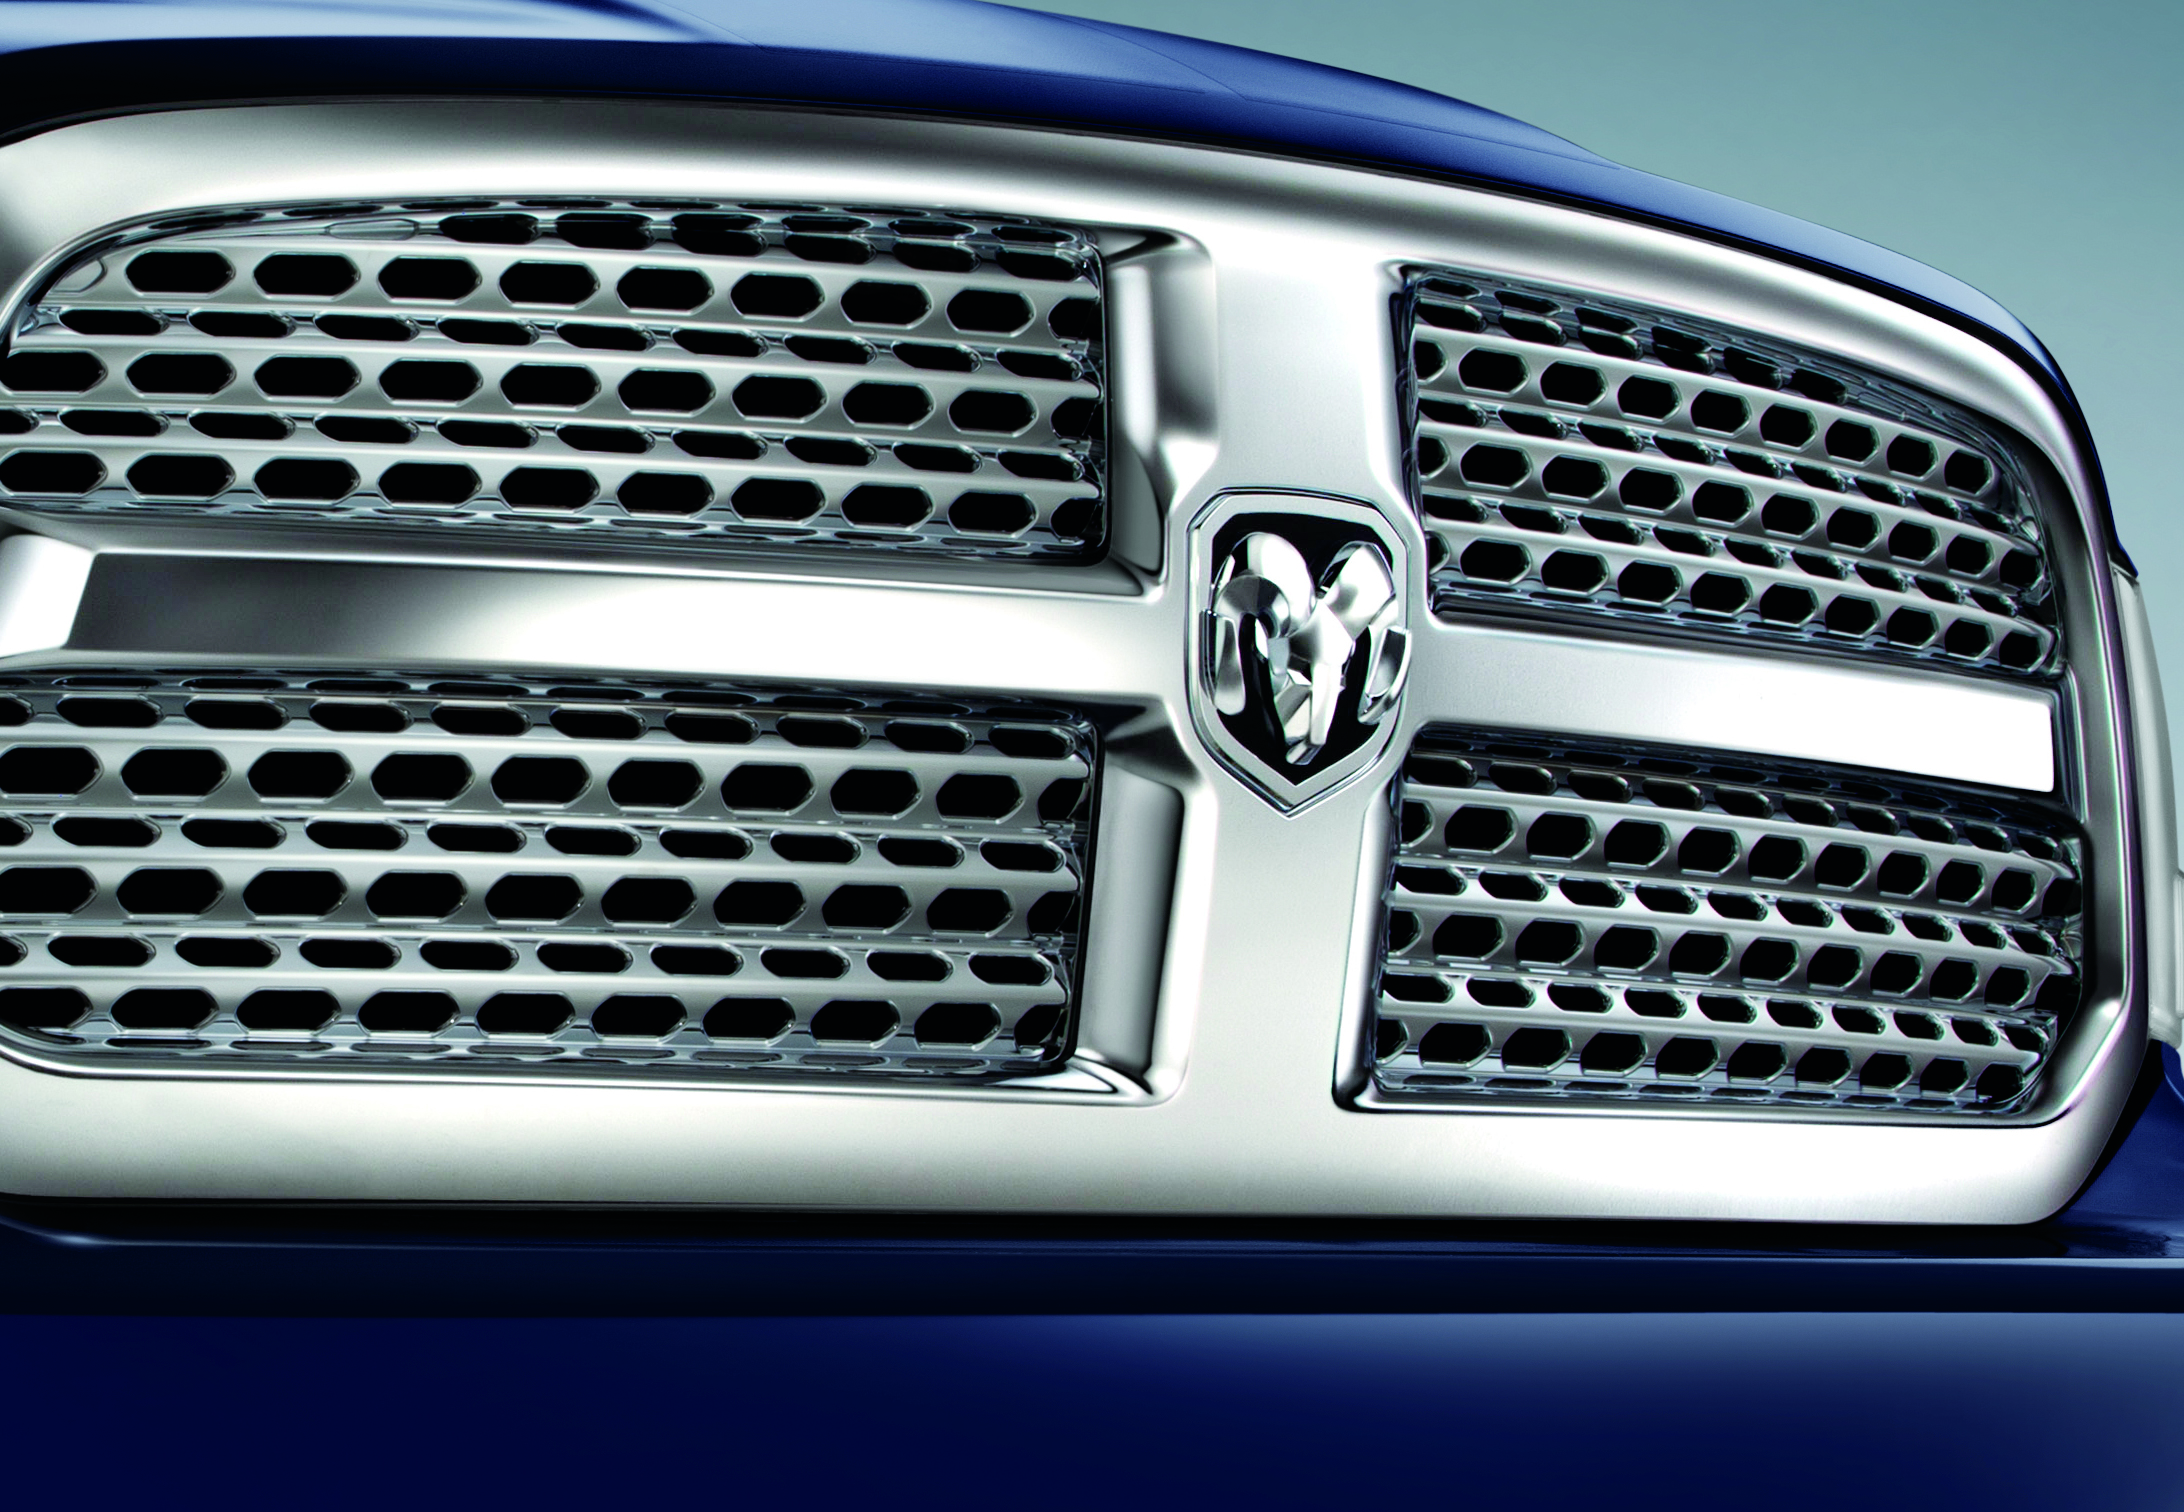 Mopar accessories for all-new Ram 1500 Chrome Horizontal Grille Dodge Ram